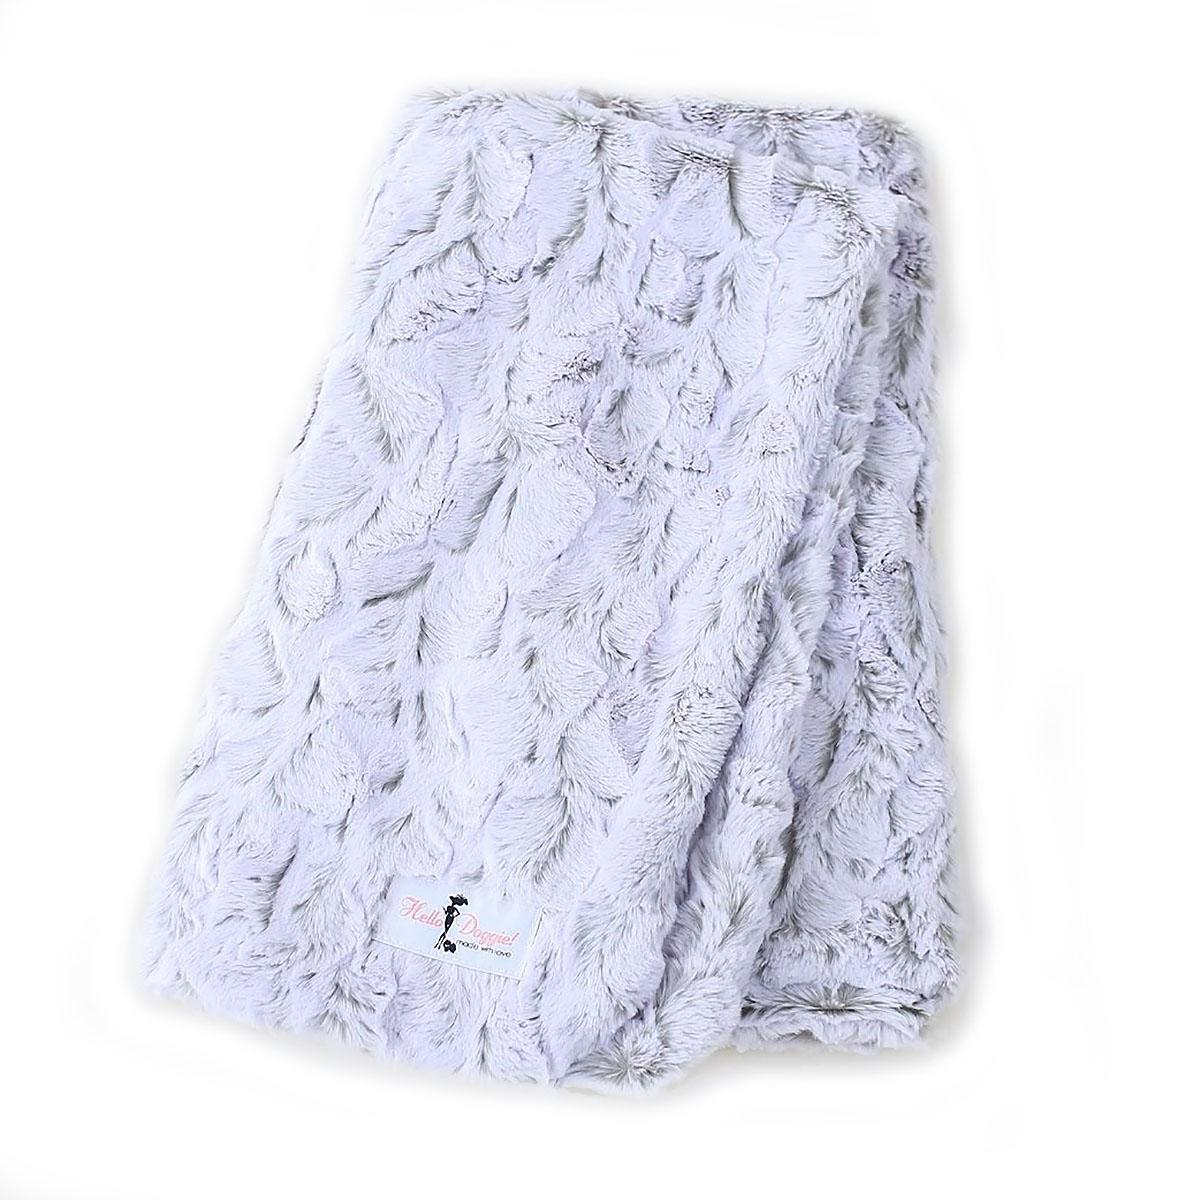 Deluxe Dog Blanket by Hello Doggie - Prism